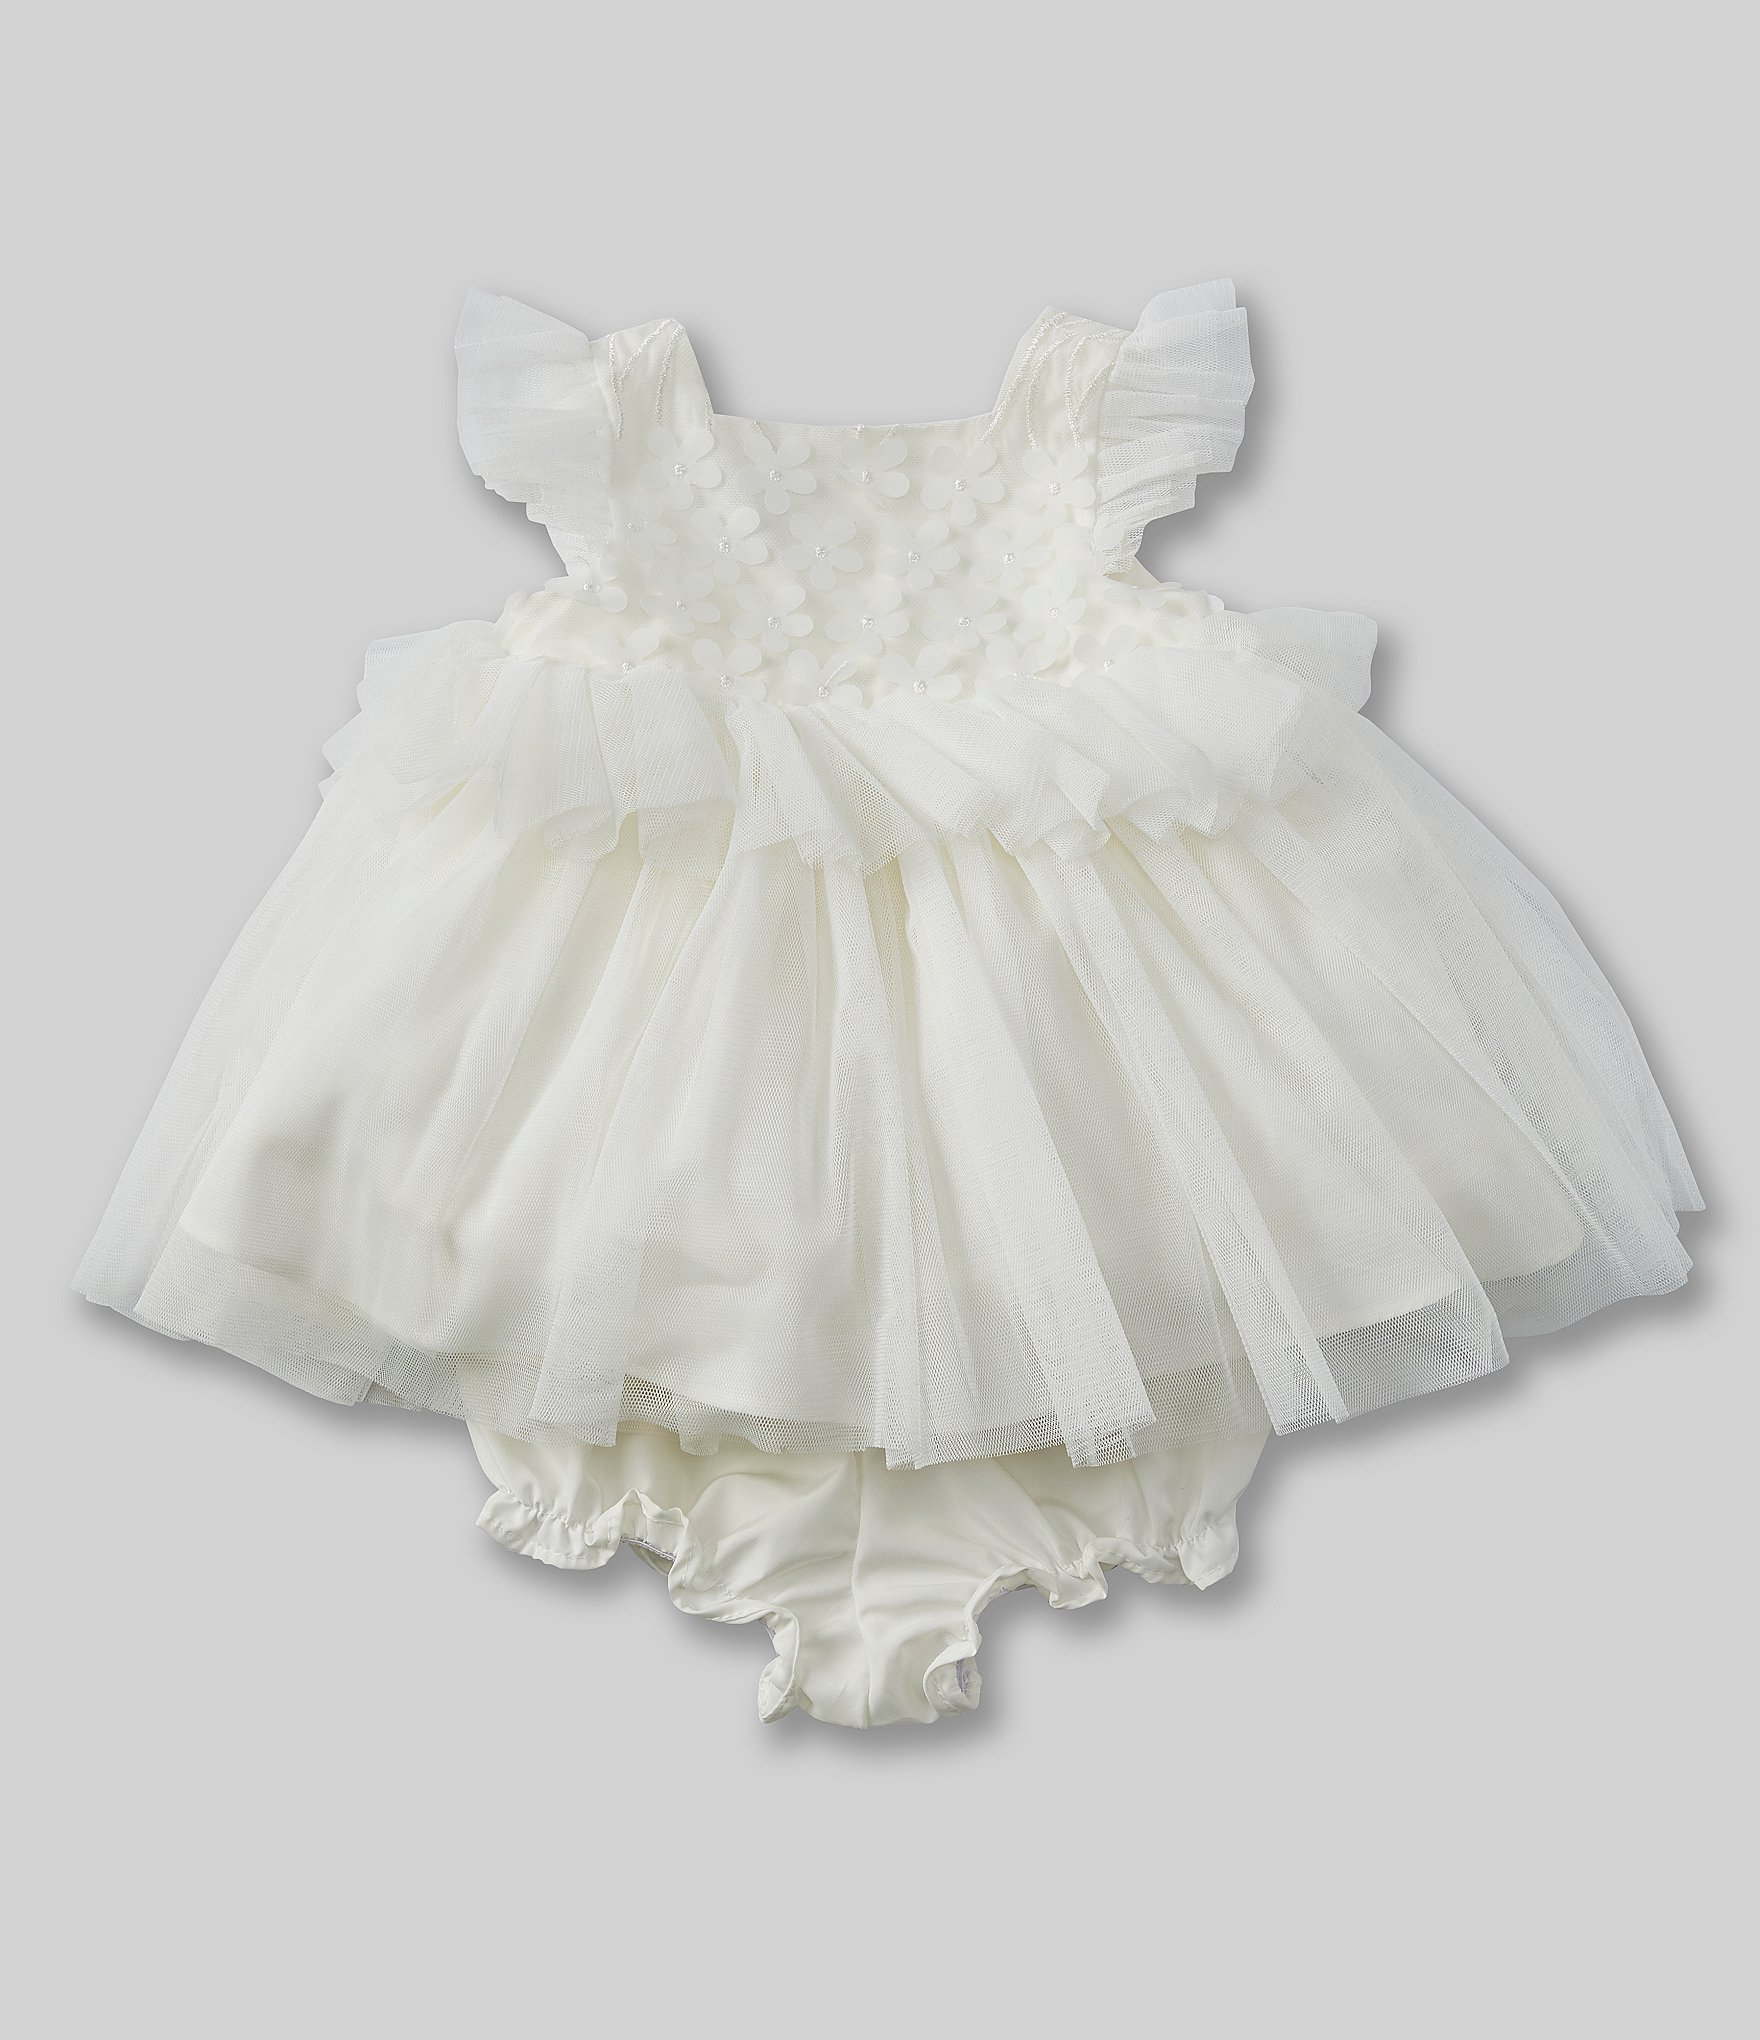 8e78fa21b Baby Girl Clothing | Dillard's